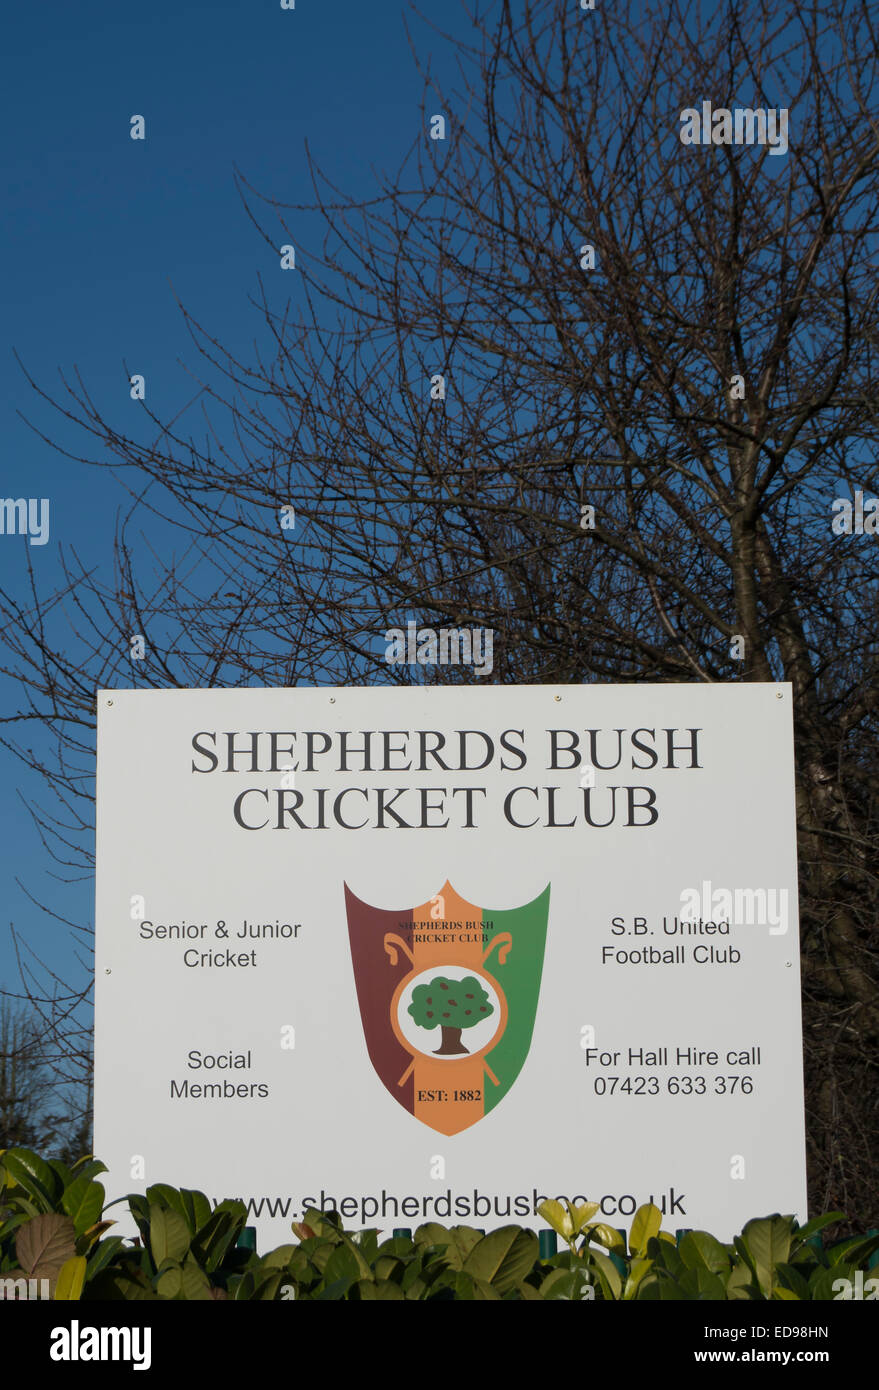 sign for shepherds bush cricket club, and shepherds bush united football club, east acton, london, england - Stock Image